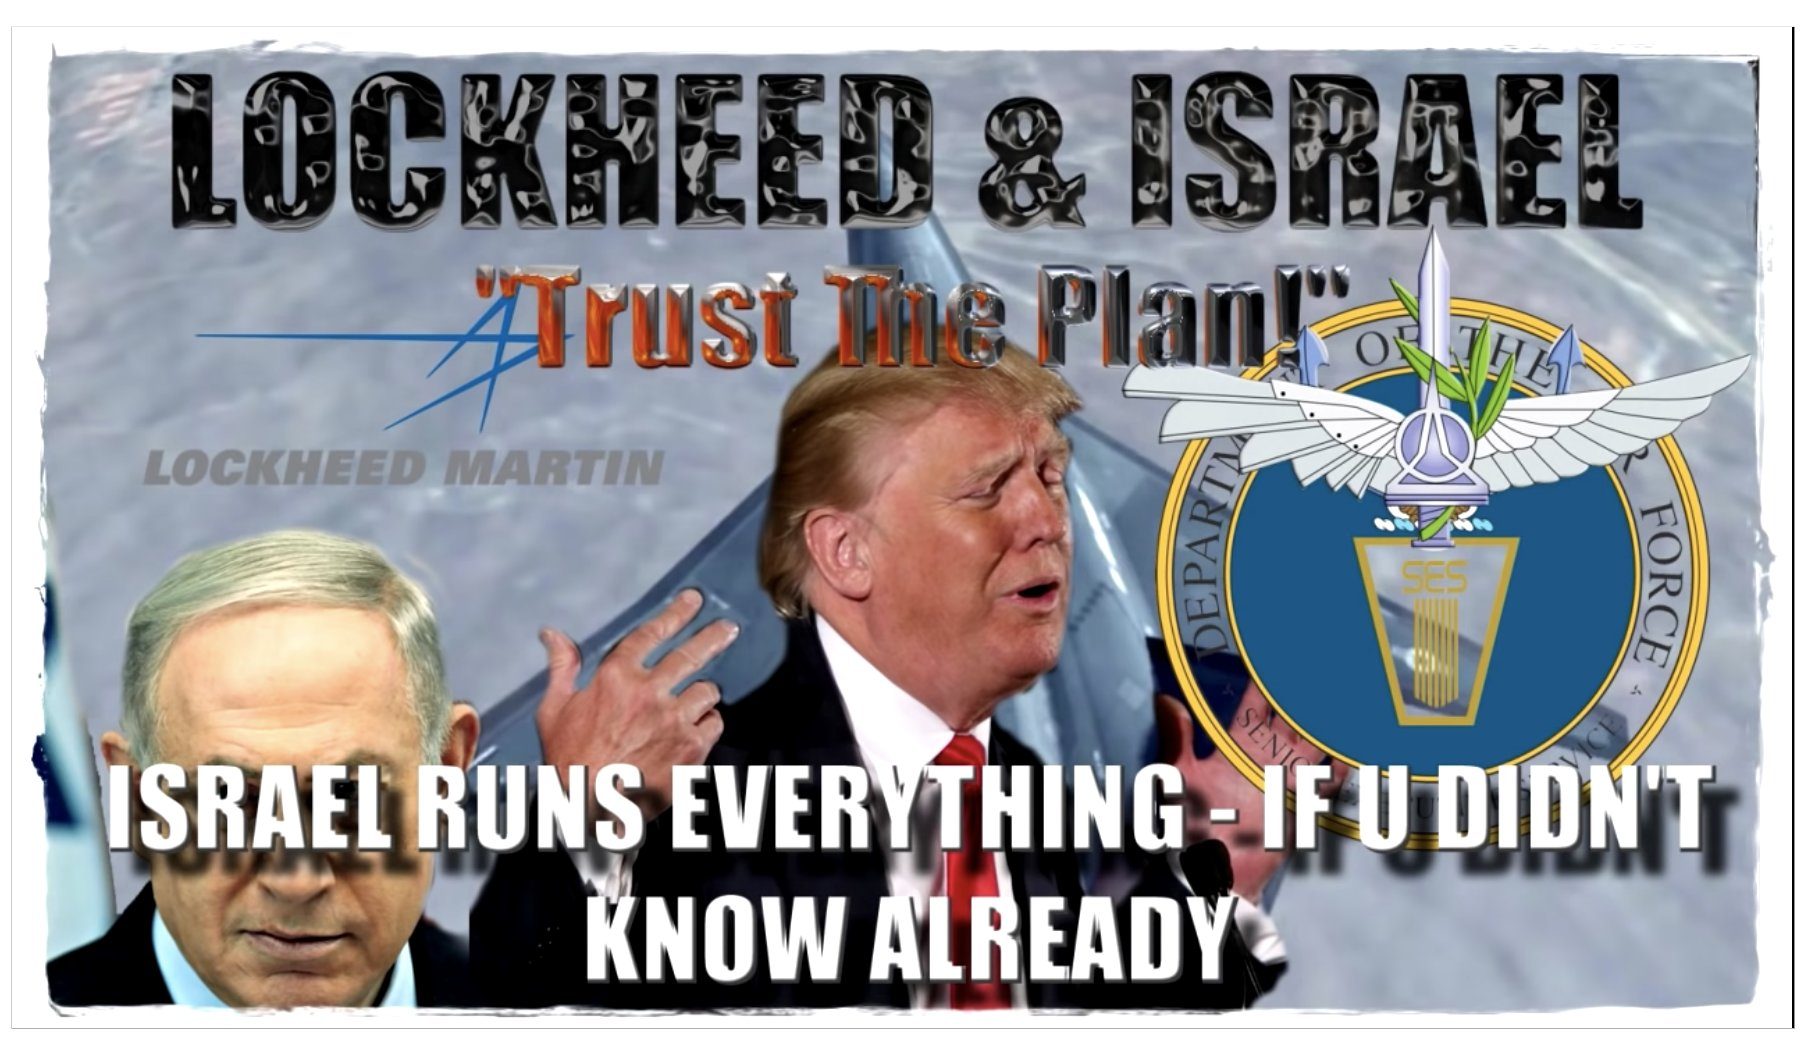 Lockheed And Israel Run Everything | Special Executive Service